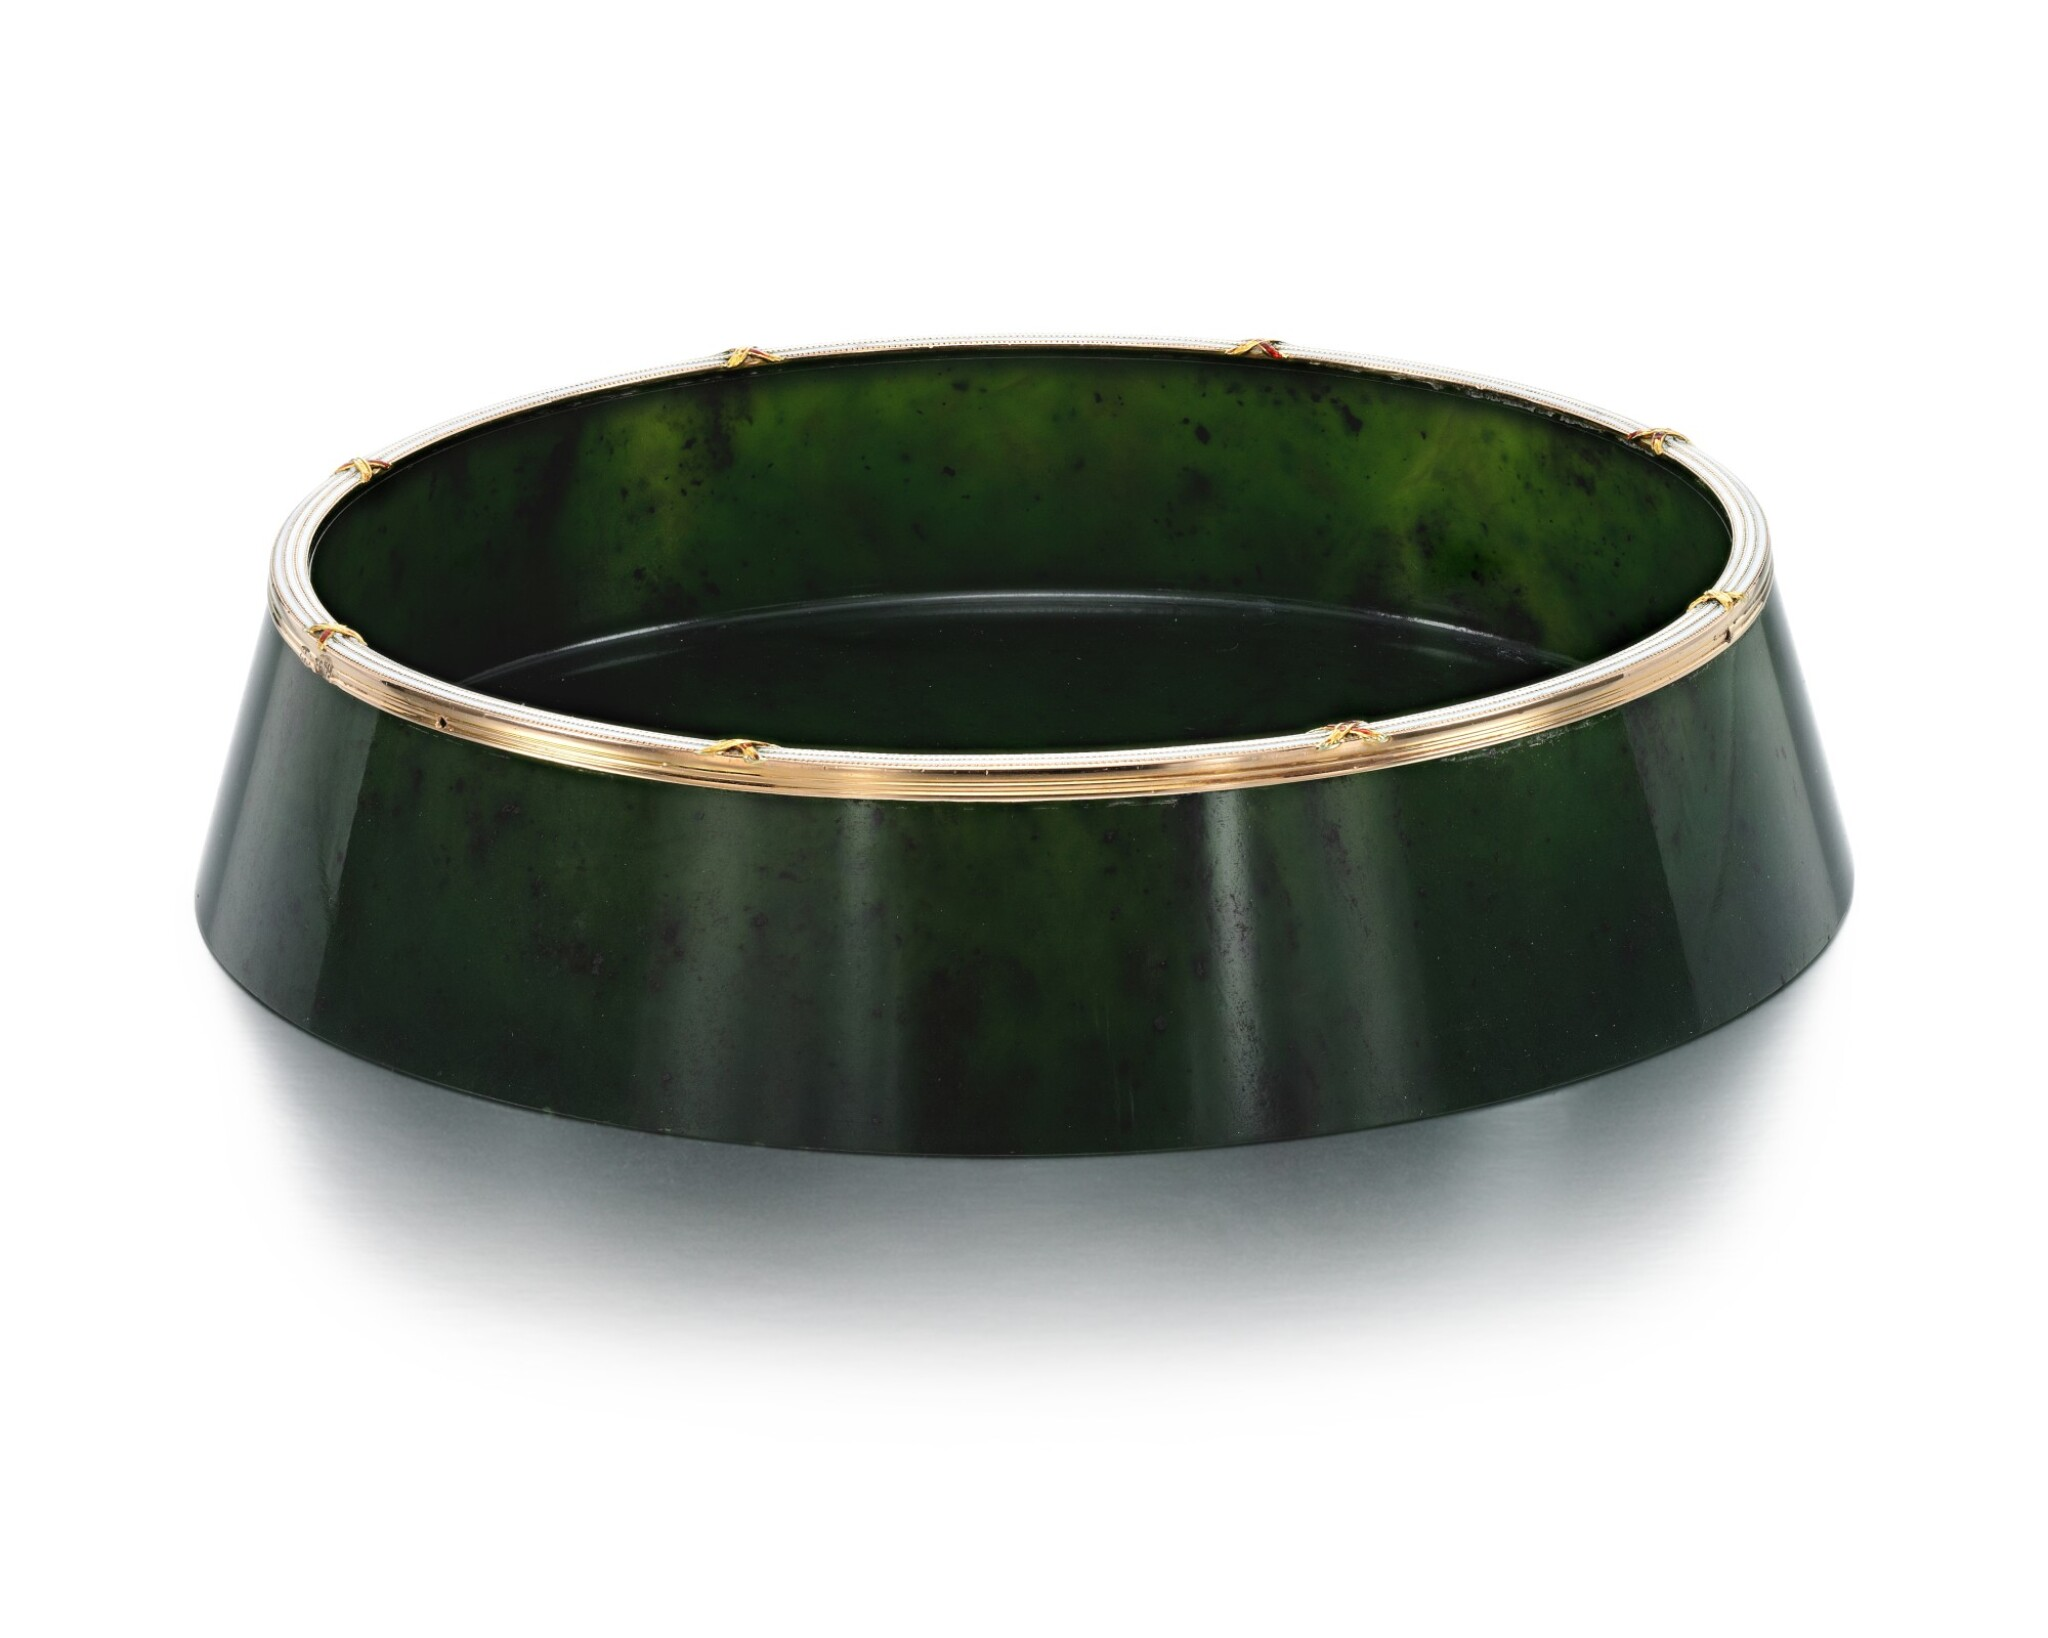 View full screen - View 1 of Lot 27. A FABERGÉ GOLD AND CHAMPLEVÉ ENAMEL-MOUNTED NEPHRITE BOWL, WORKMASTER MICHAEL PERCHIN, ST PETERSBURG, CIRCA 1890.